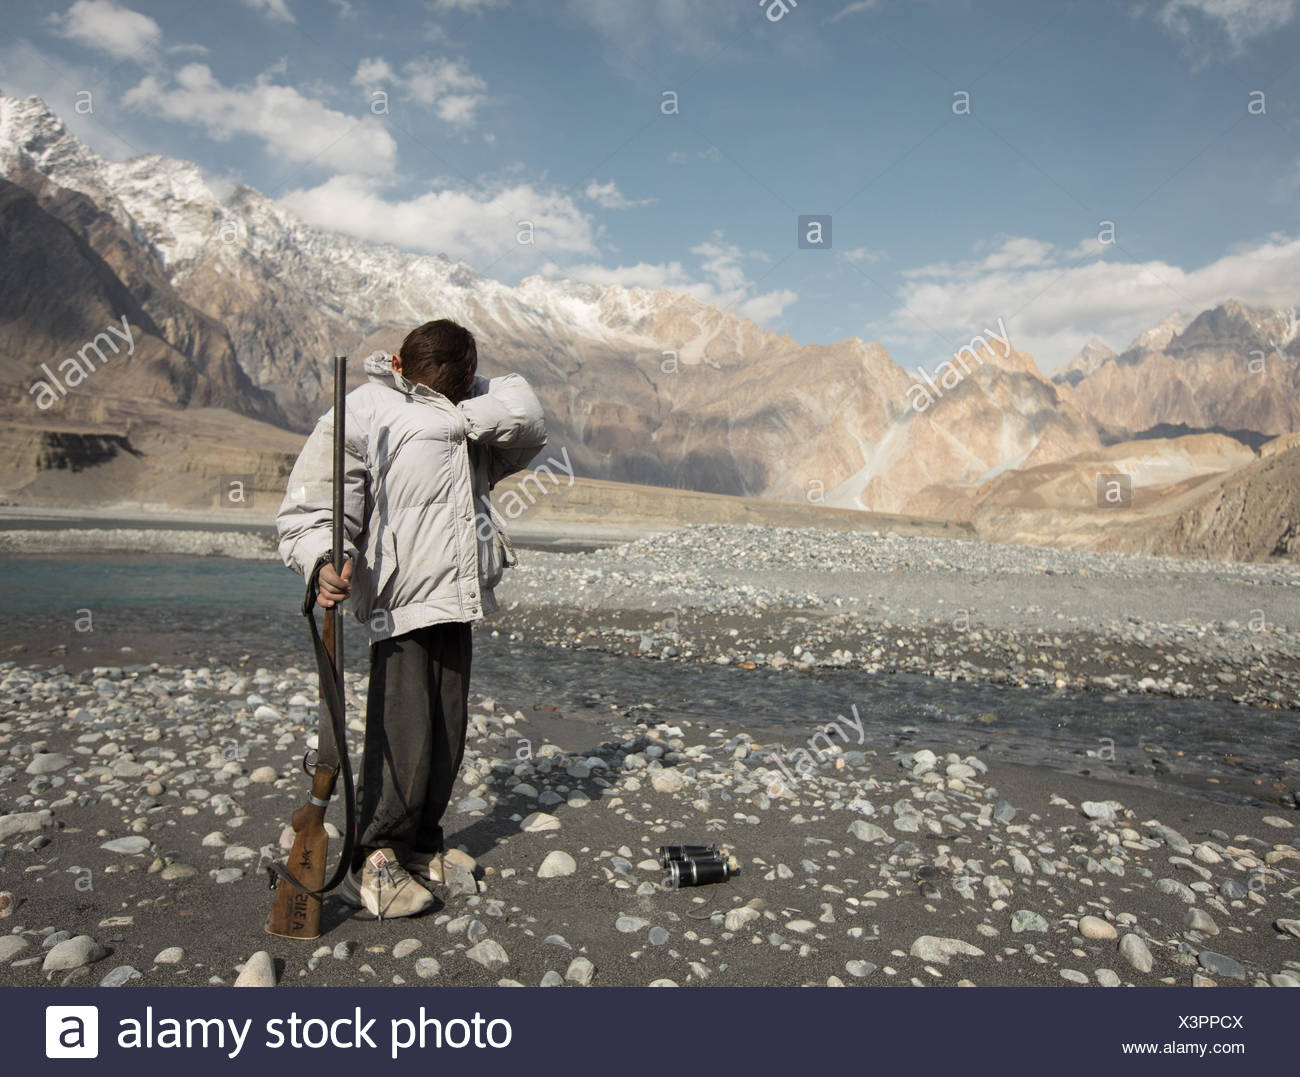 A duck hunter looks for a cartridge. - Stock Image